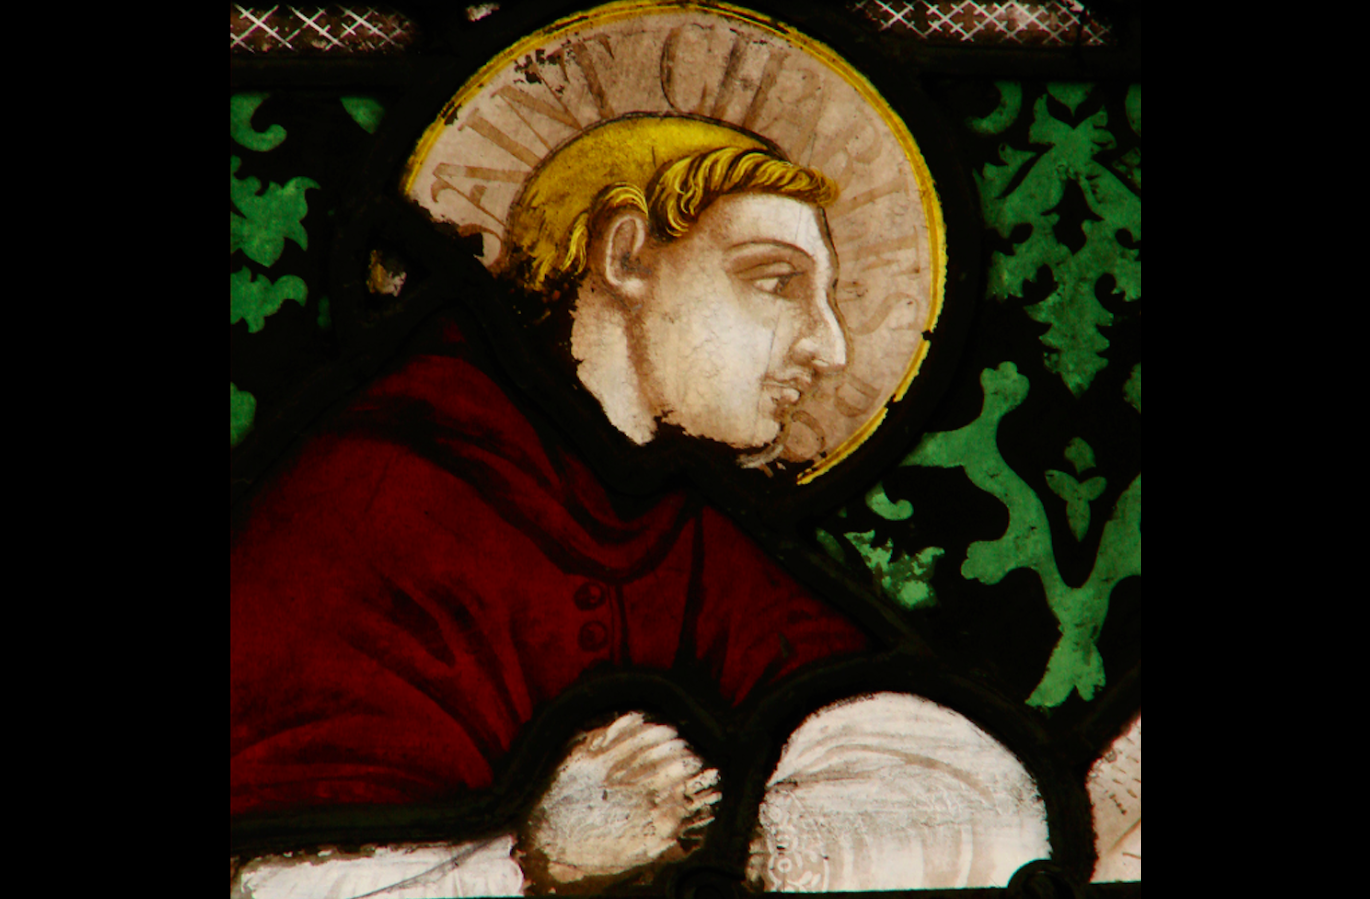 Depiction of Charles Borromeo in a stained glass window